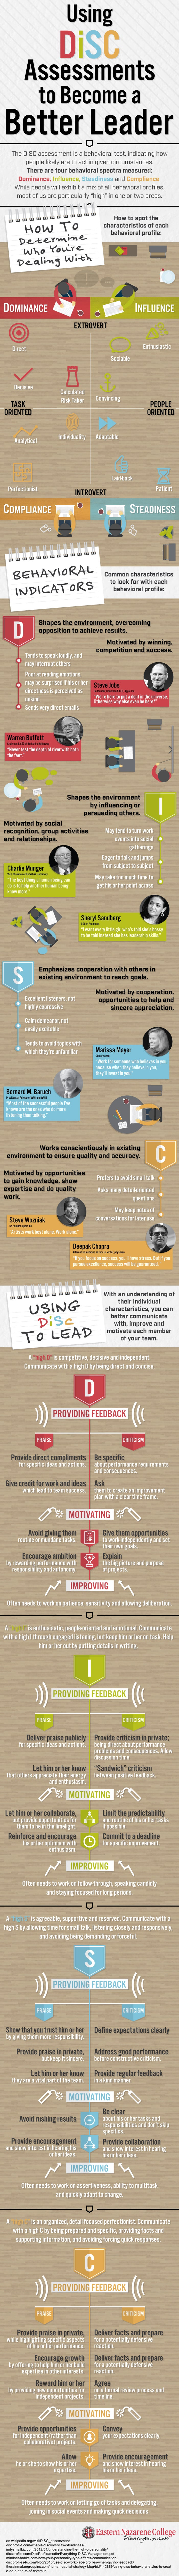 "Learn How To Lead Different Types Of Individuals With The ""DiSC"" System [Infographic]"